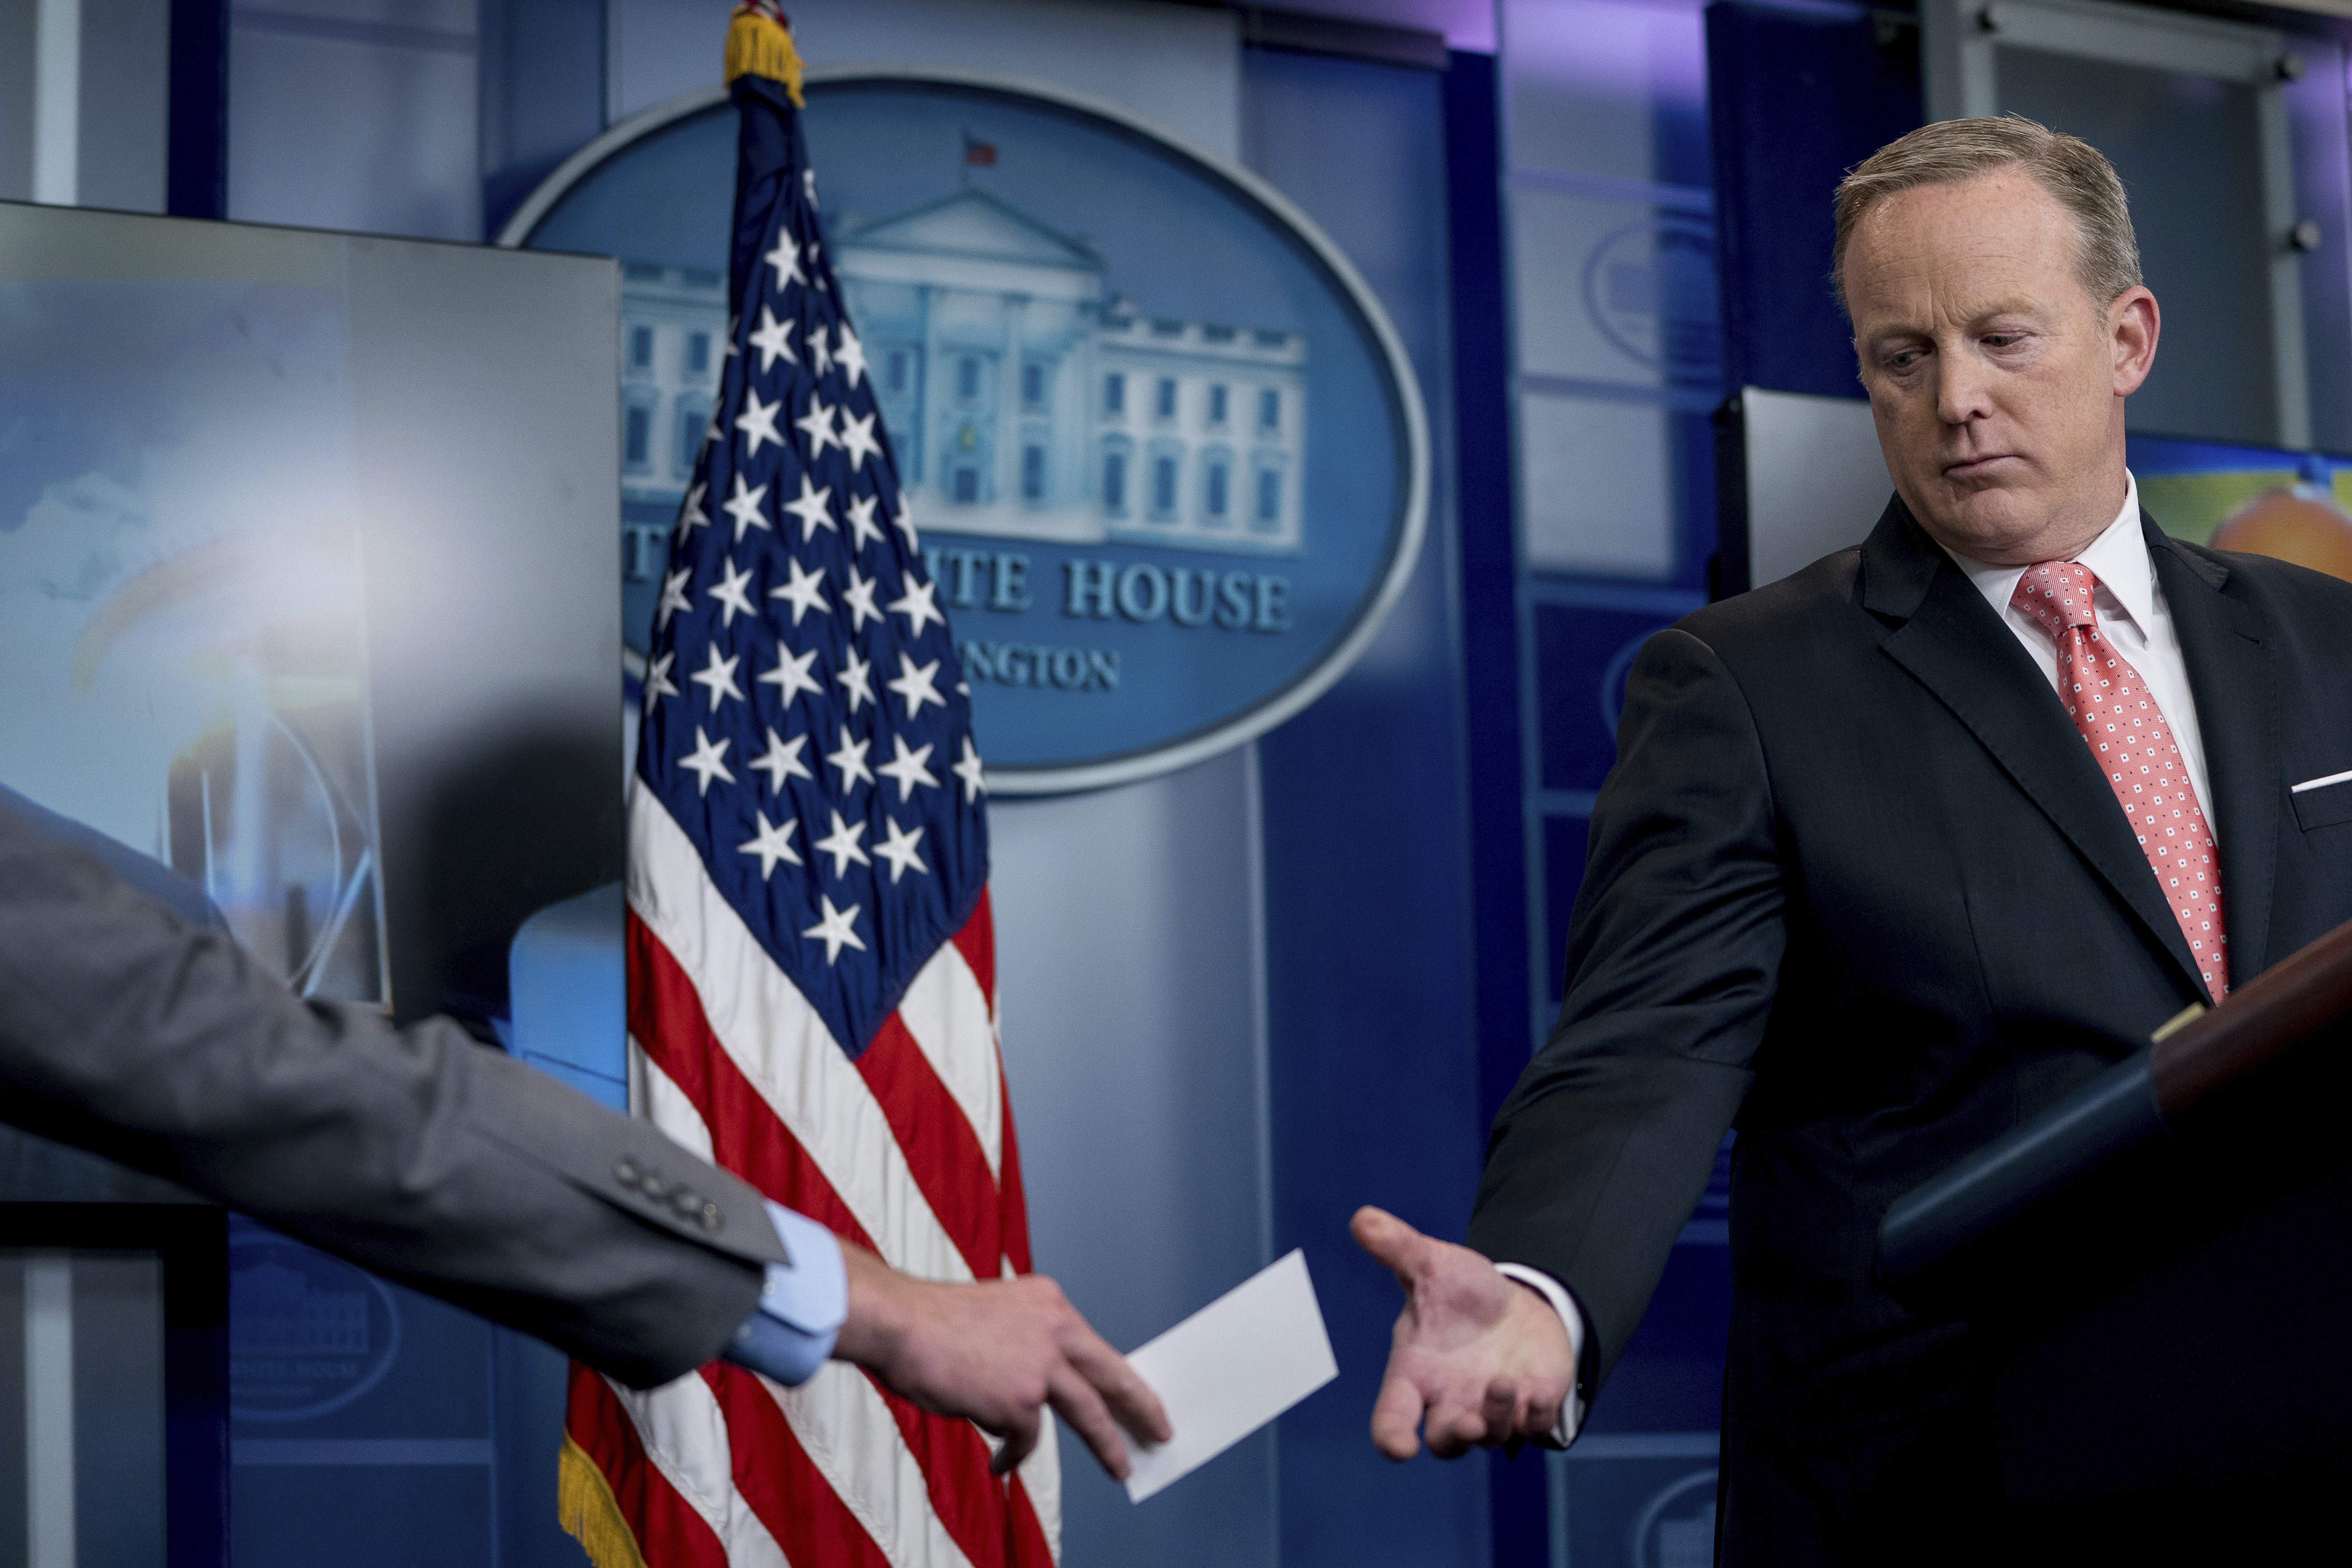 White House press secretary Sean Spicer gets a note from a staff member during the daily press briefing at the White House, Tuesday, June 6, 2017, in Washington. Spicer discussed Trump's tweets, former FBI Director James Comey's congressional testimony and other topics. (AP Photo/Andrew Harnik)